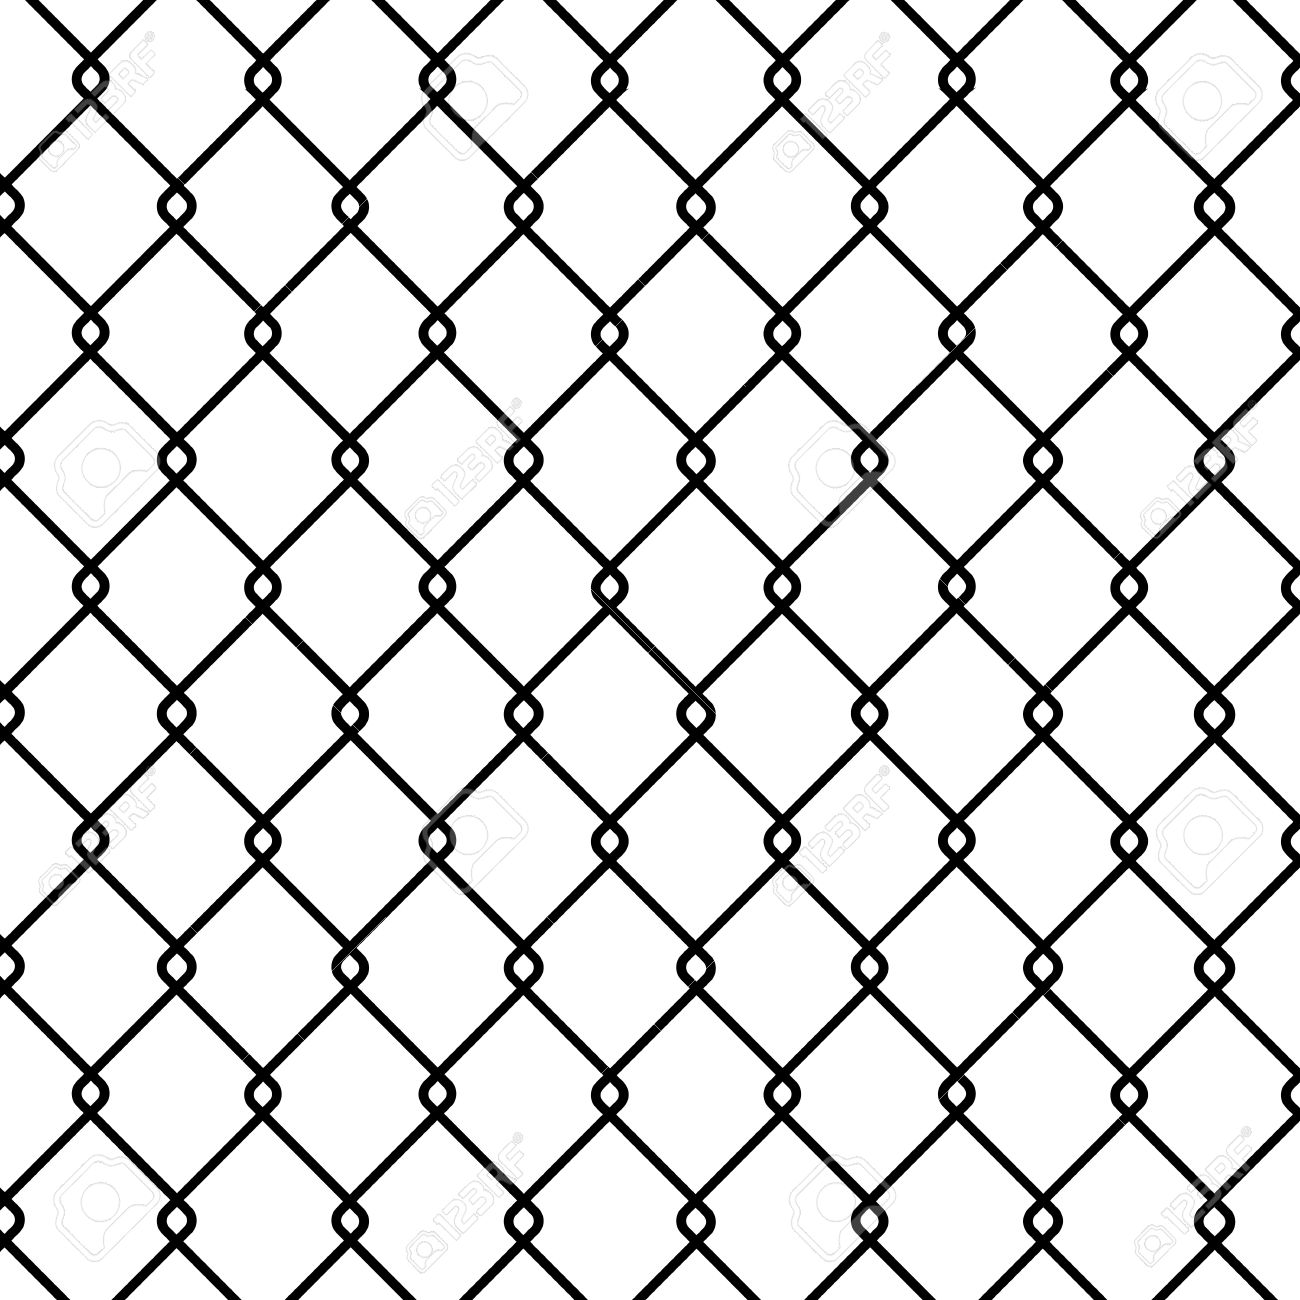 Chain Link Fence Drawing at GetDrawings.com | Free for personal use ...